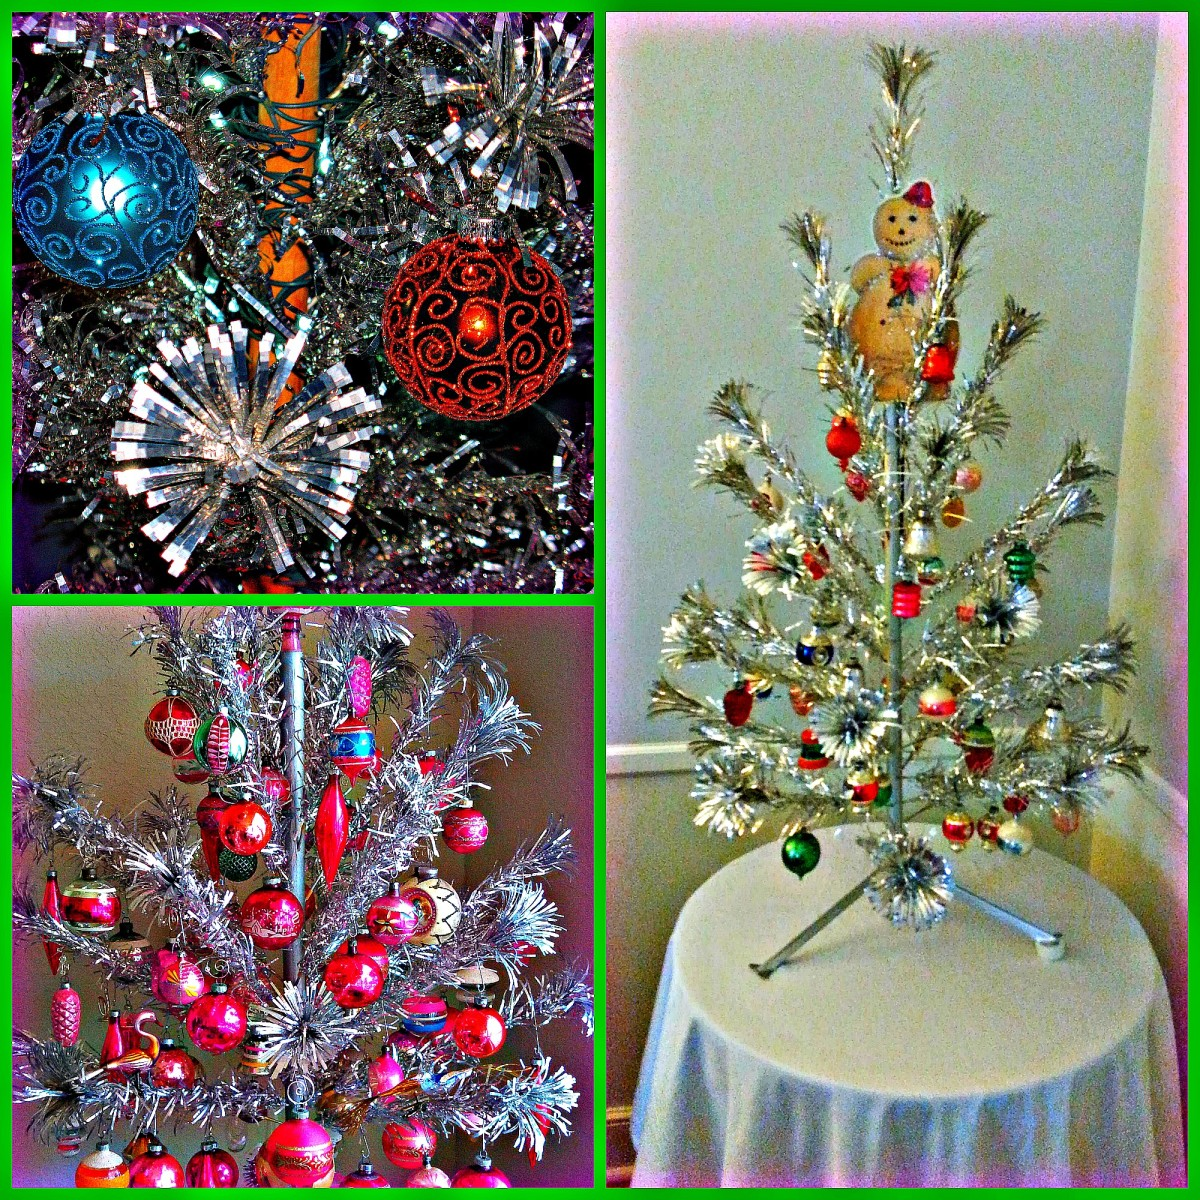 You can go with turquoise or lime green bows, with wrapping paper, and decorations to match. Or if you are feeling blue you can have a blue Christmas with an Aluminum tree anything is possible.